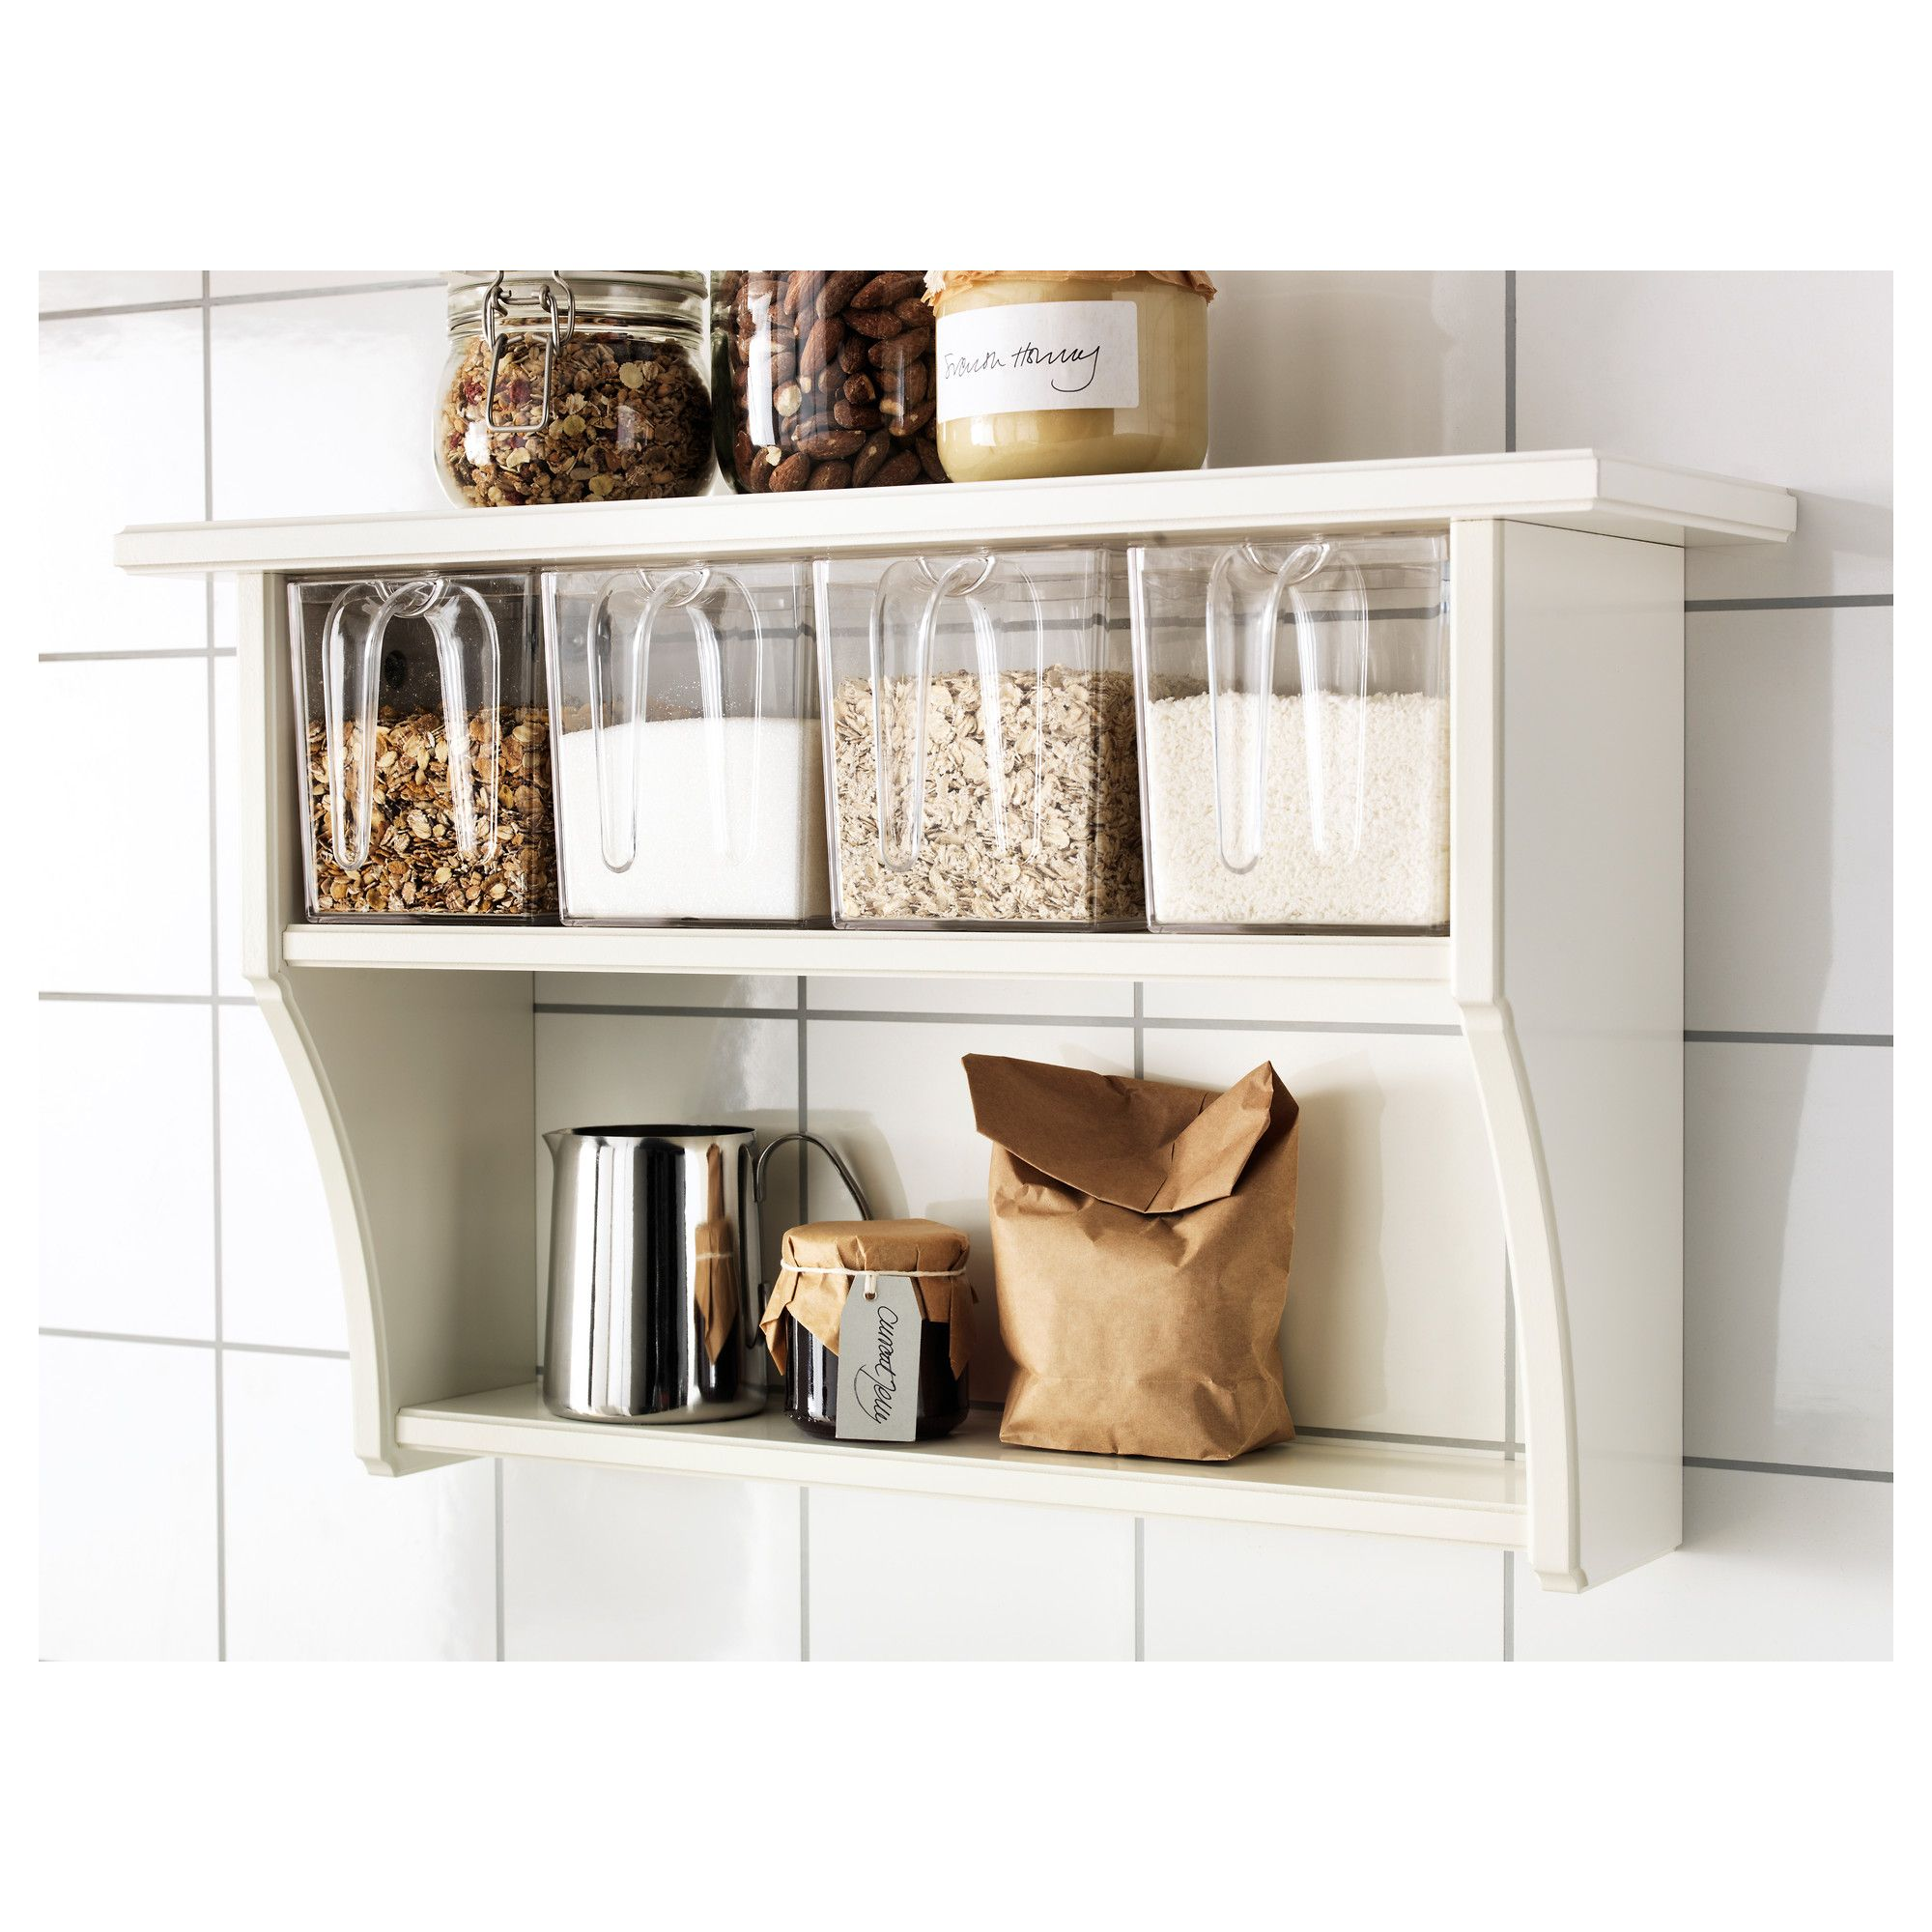 Best Furniture And Home Furnishings Wall Shelf With Drawer 400 x 300